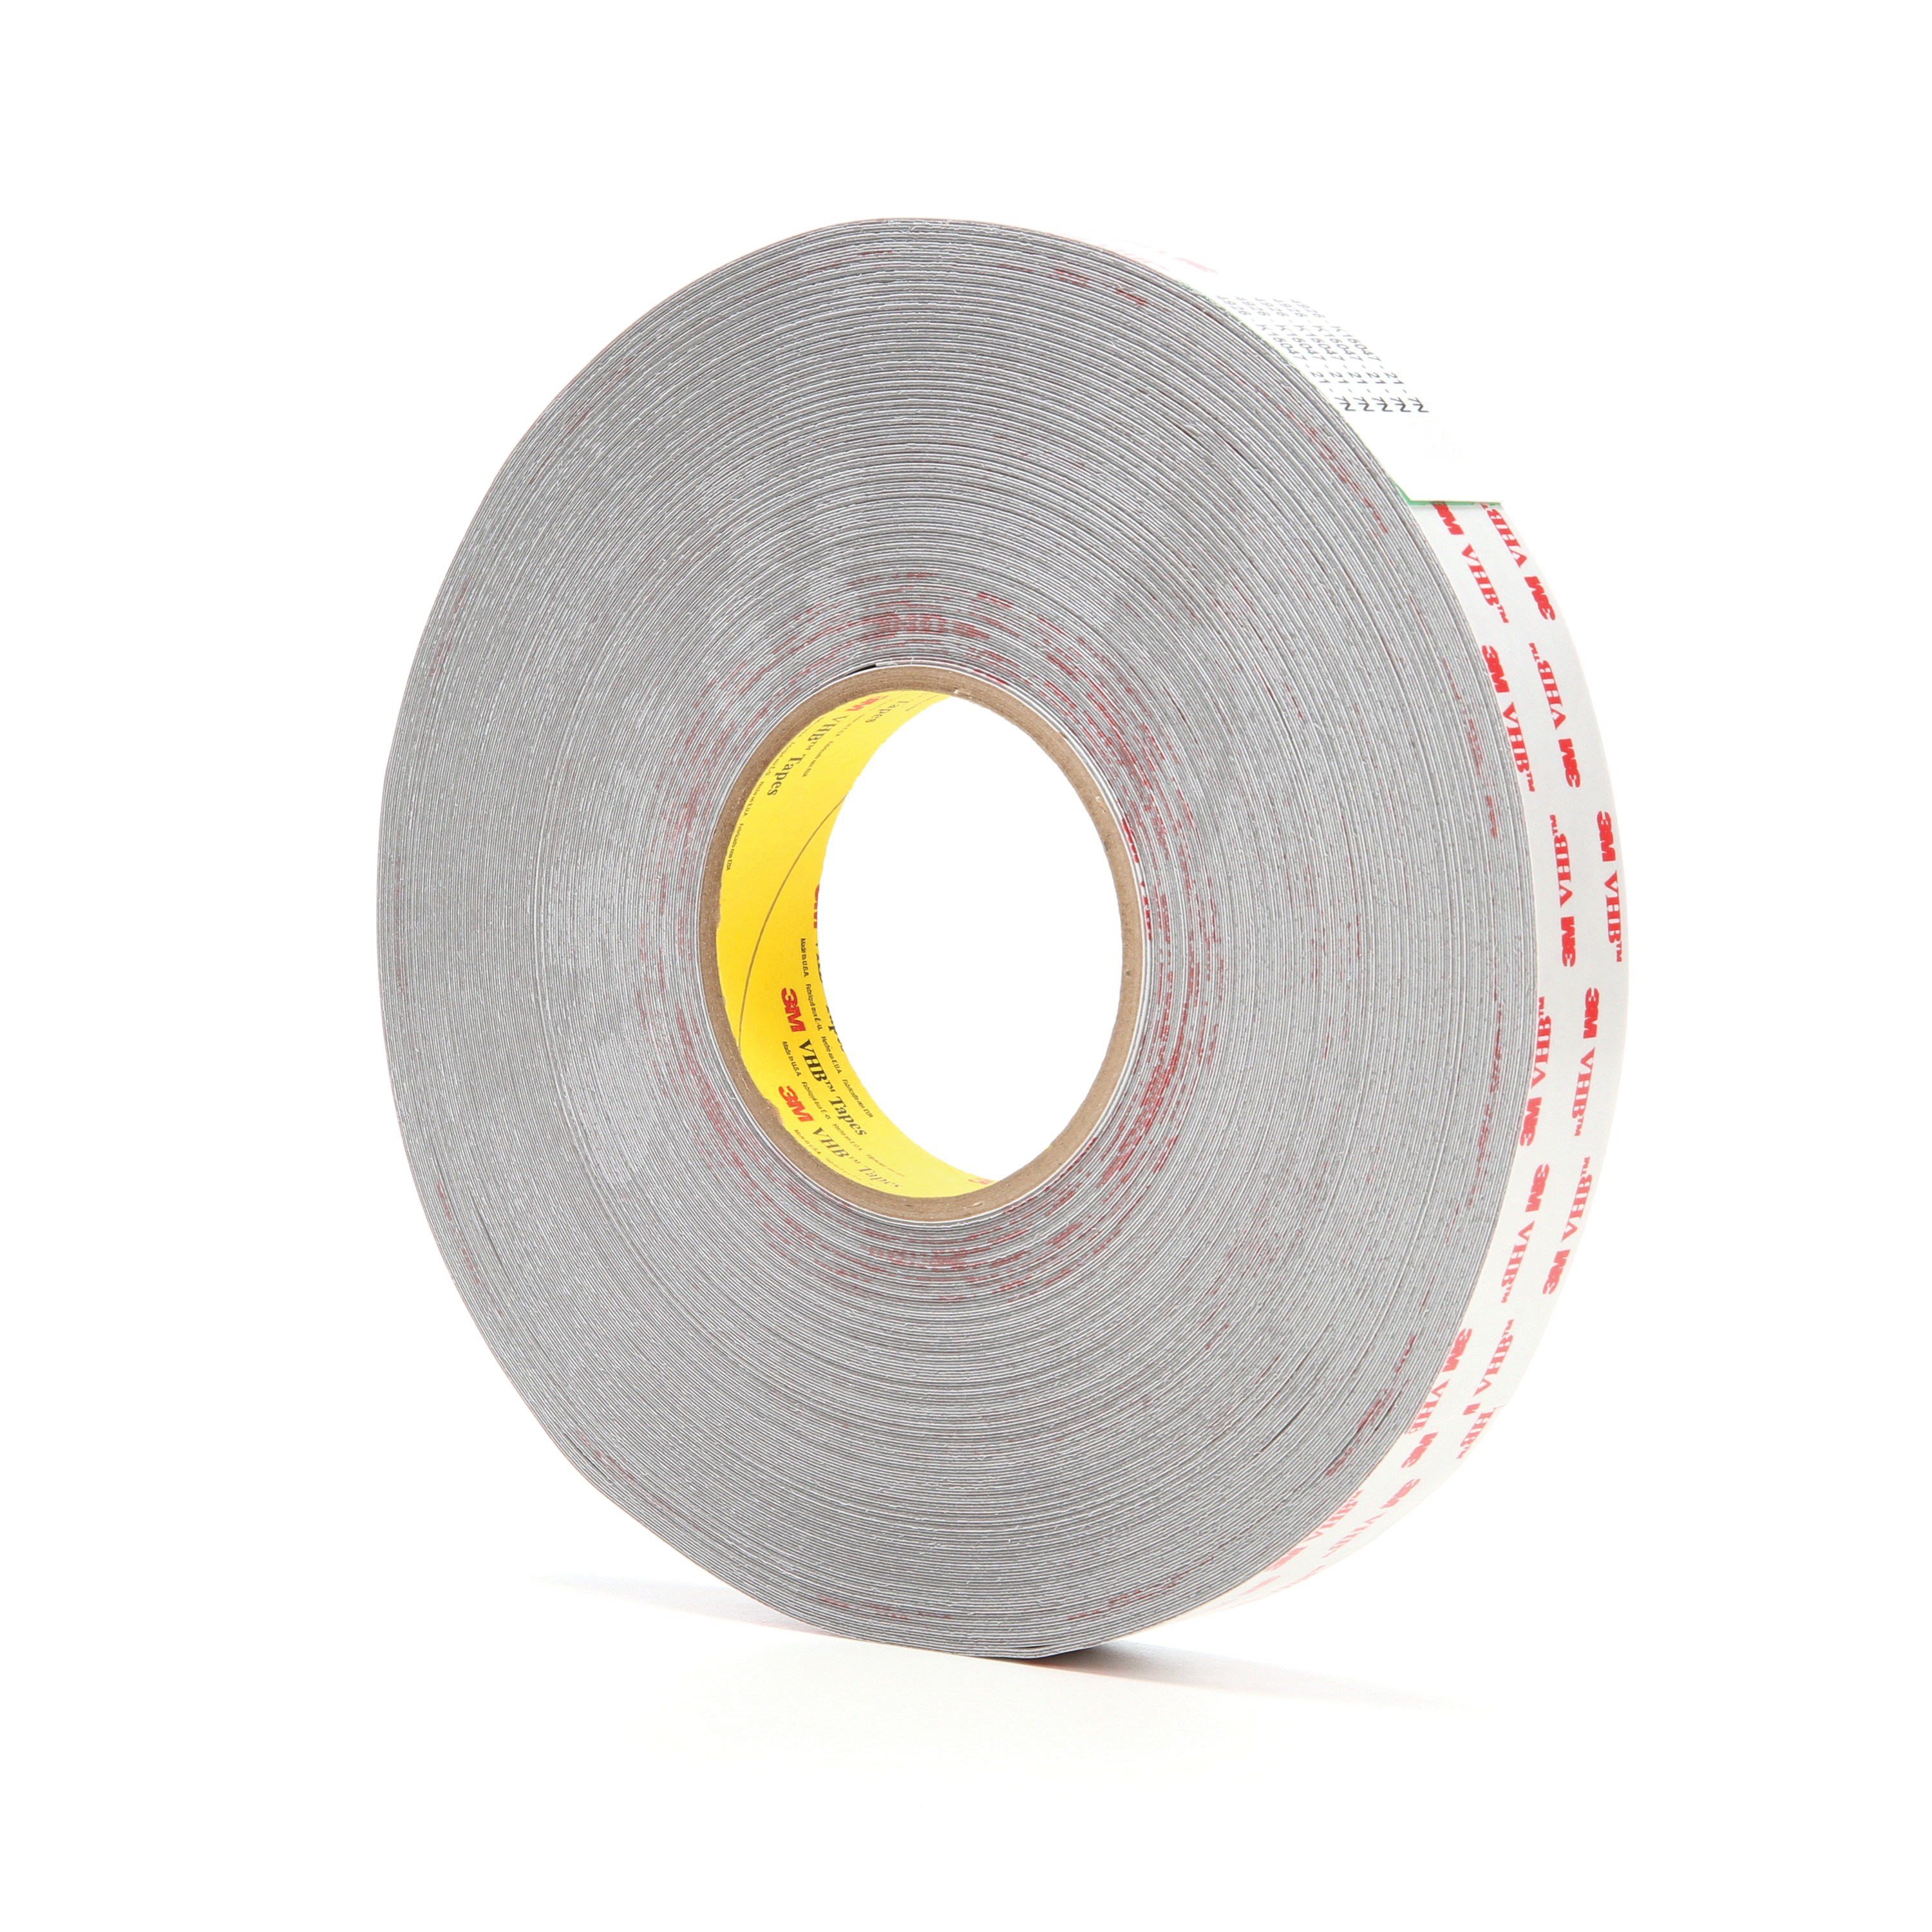 3M™ VHB™ 021200-24386 Pressure Sensitive Double Sided Bonding Tape, 72 yd L x 1 in W, 0.015 in THK, Multi-Purpose Acrylic Adhesive, Acrylic Foam Backing, Gray